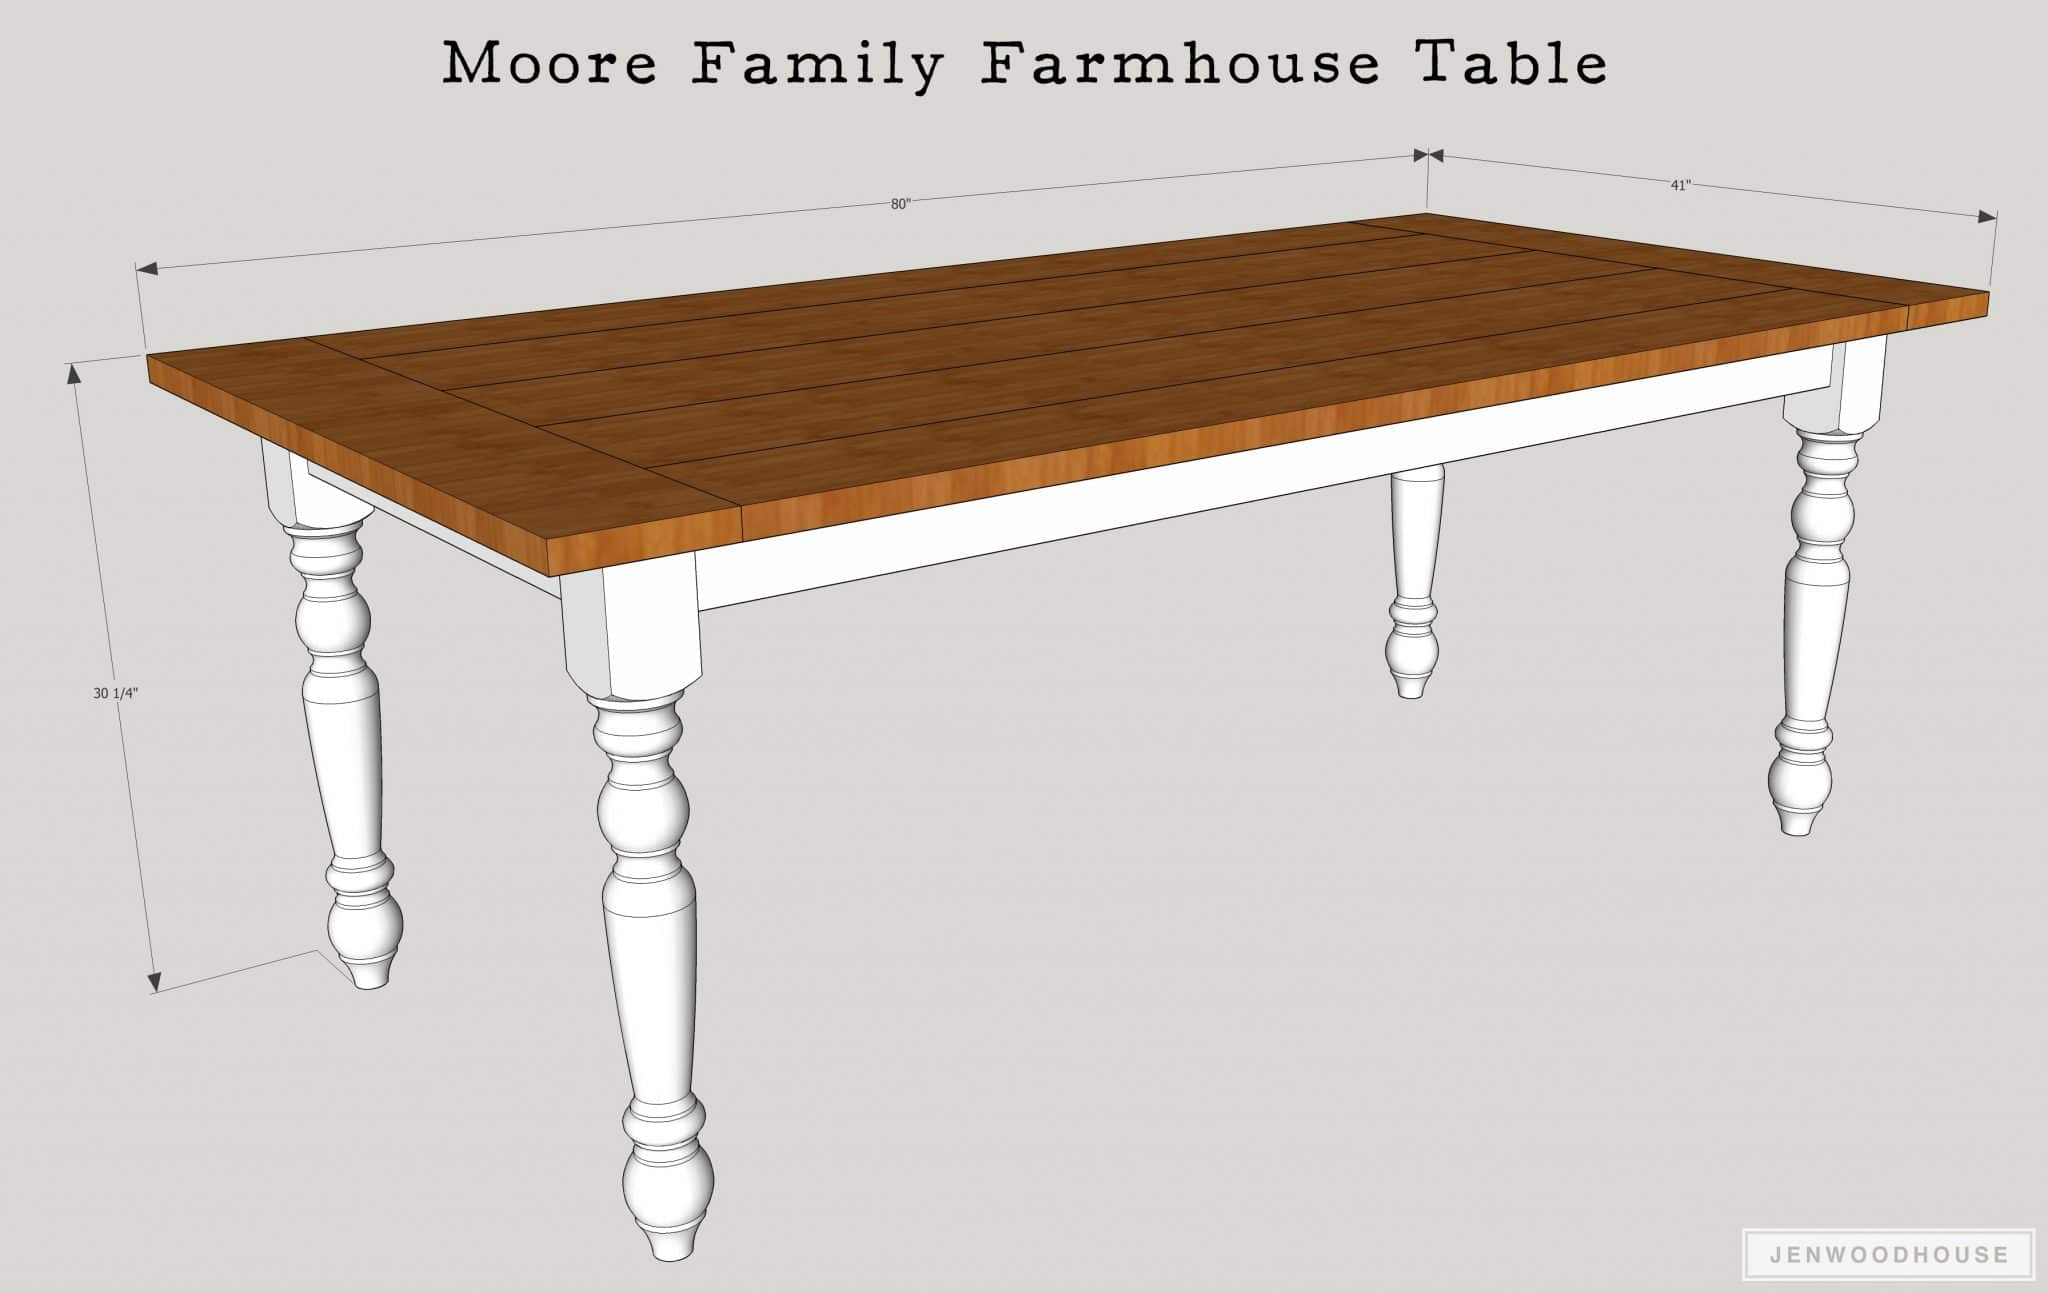 DIY Farmhouse Dining Table : Moores Farmhouse Table dimensions from jenwoodhouse.com size 3583 x 2262 jpeg 1364kB